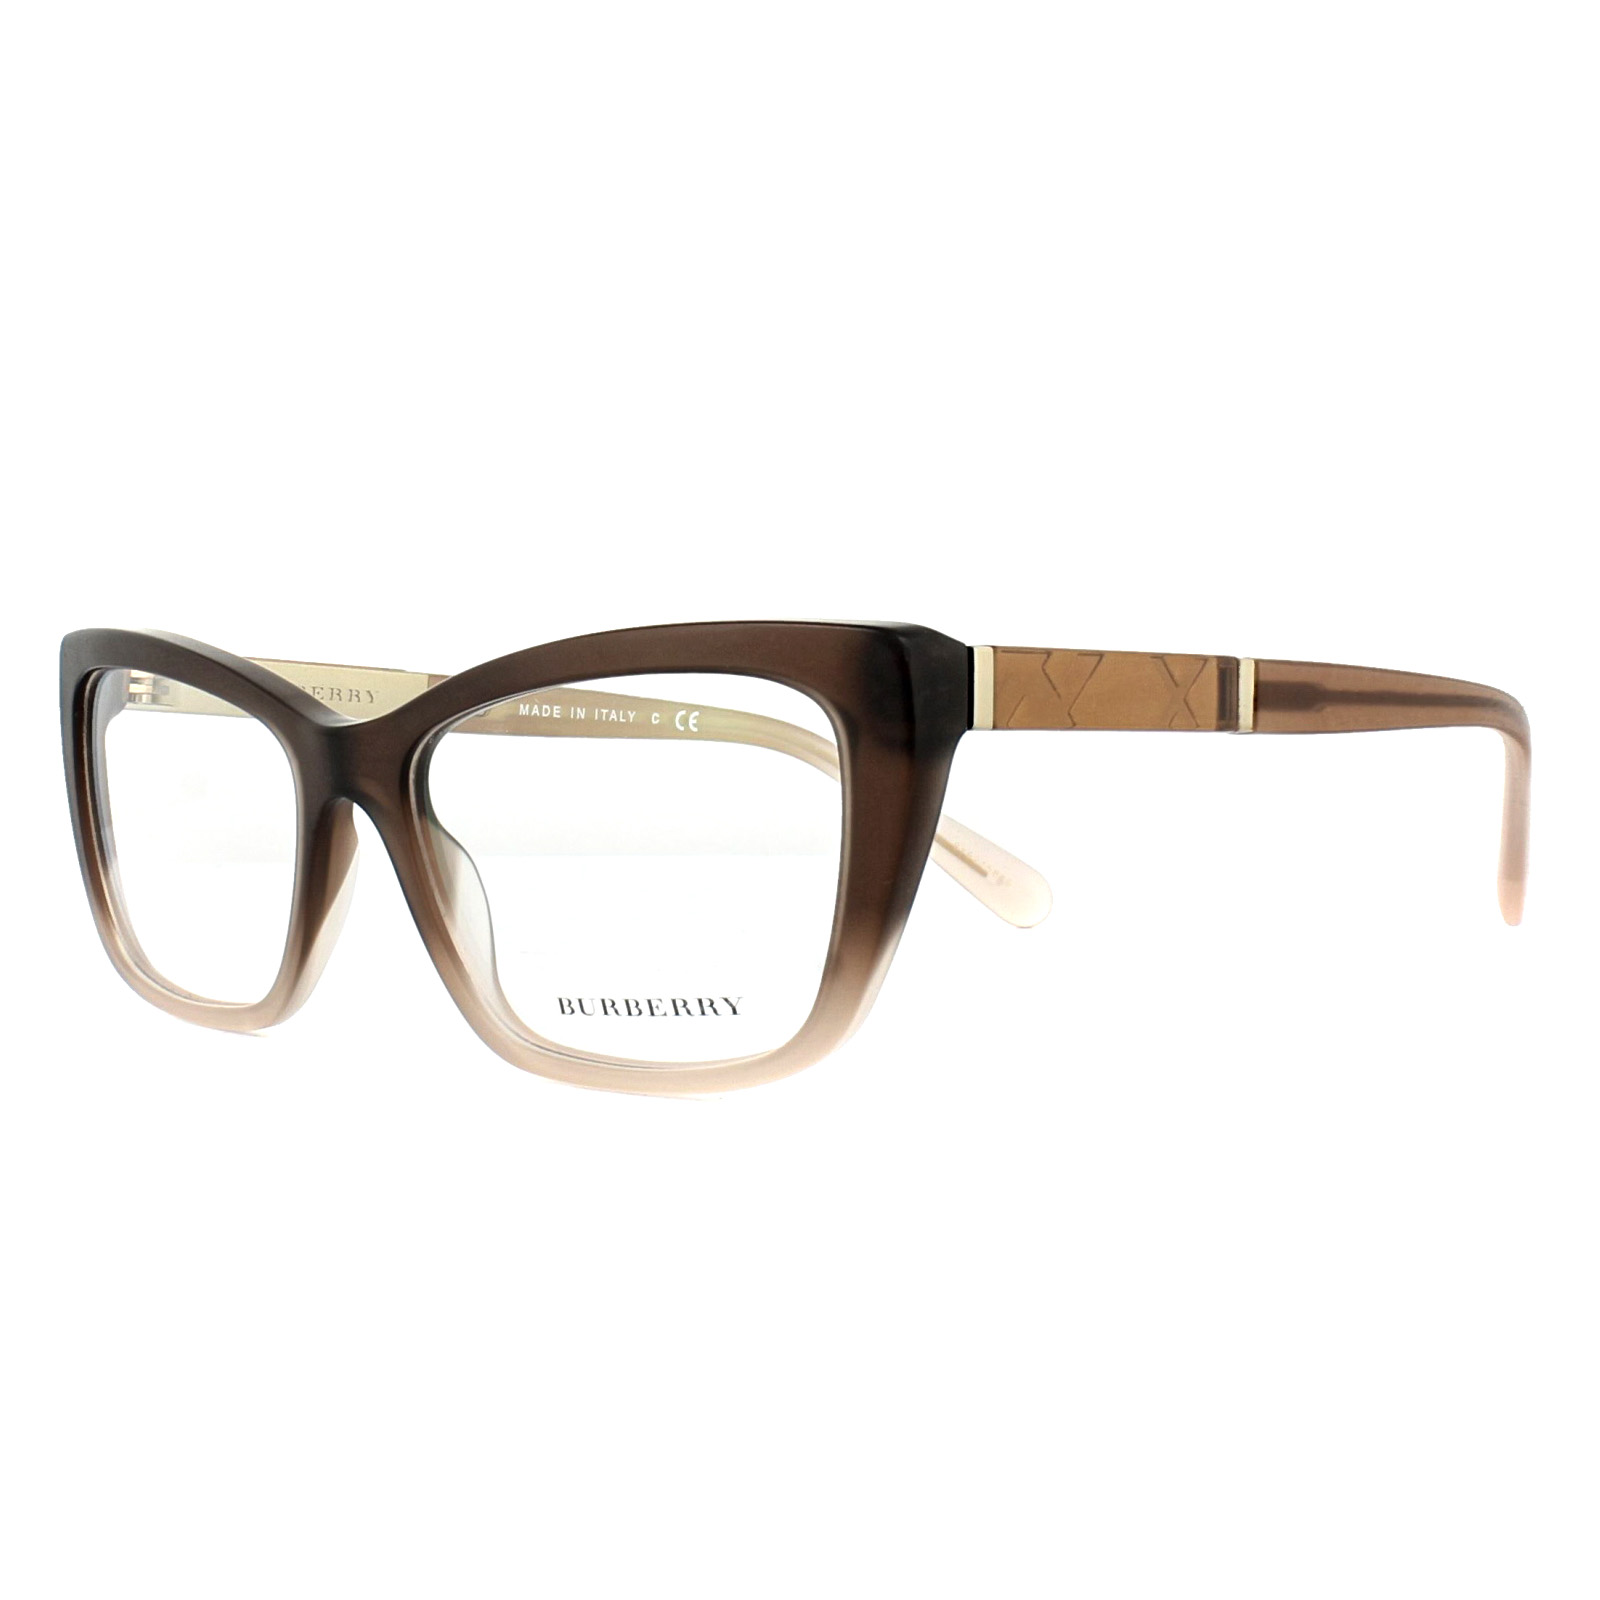 9f1f82d093 Sentinel Burberry Glasses Frames BE2236 3607 Brown Gradient Matt Pink 54mm  Womens